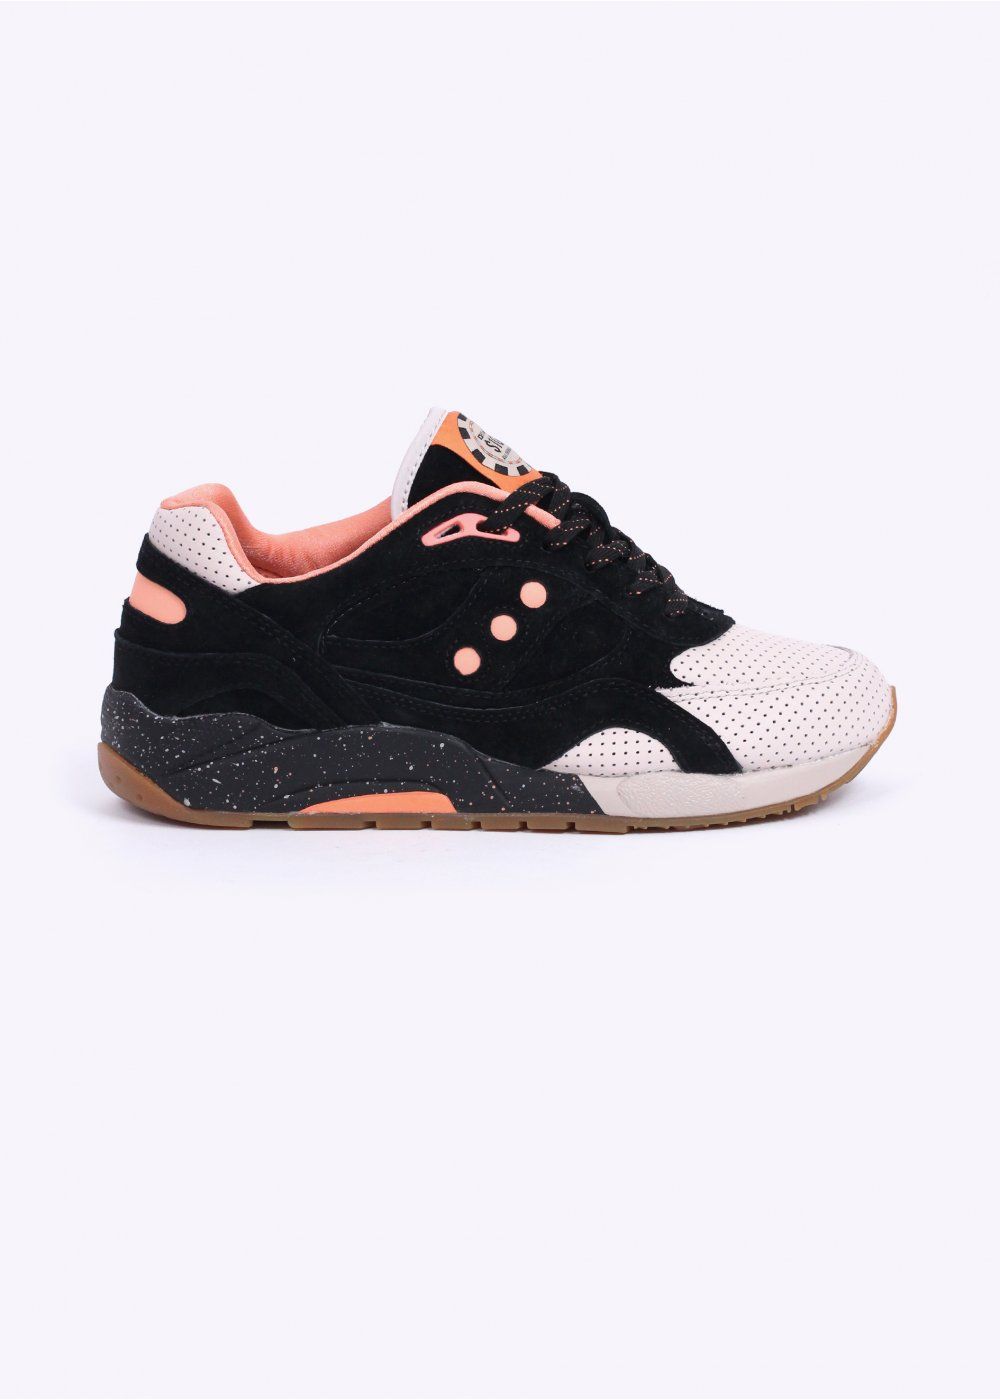 super cute 70a46 ccdc0 Saucony x Feature G9 Shadow 6000 'High Roller' - Black / Pink